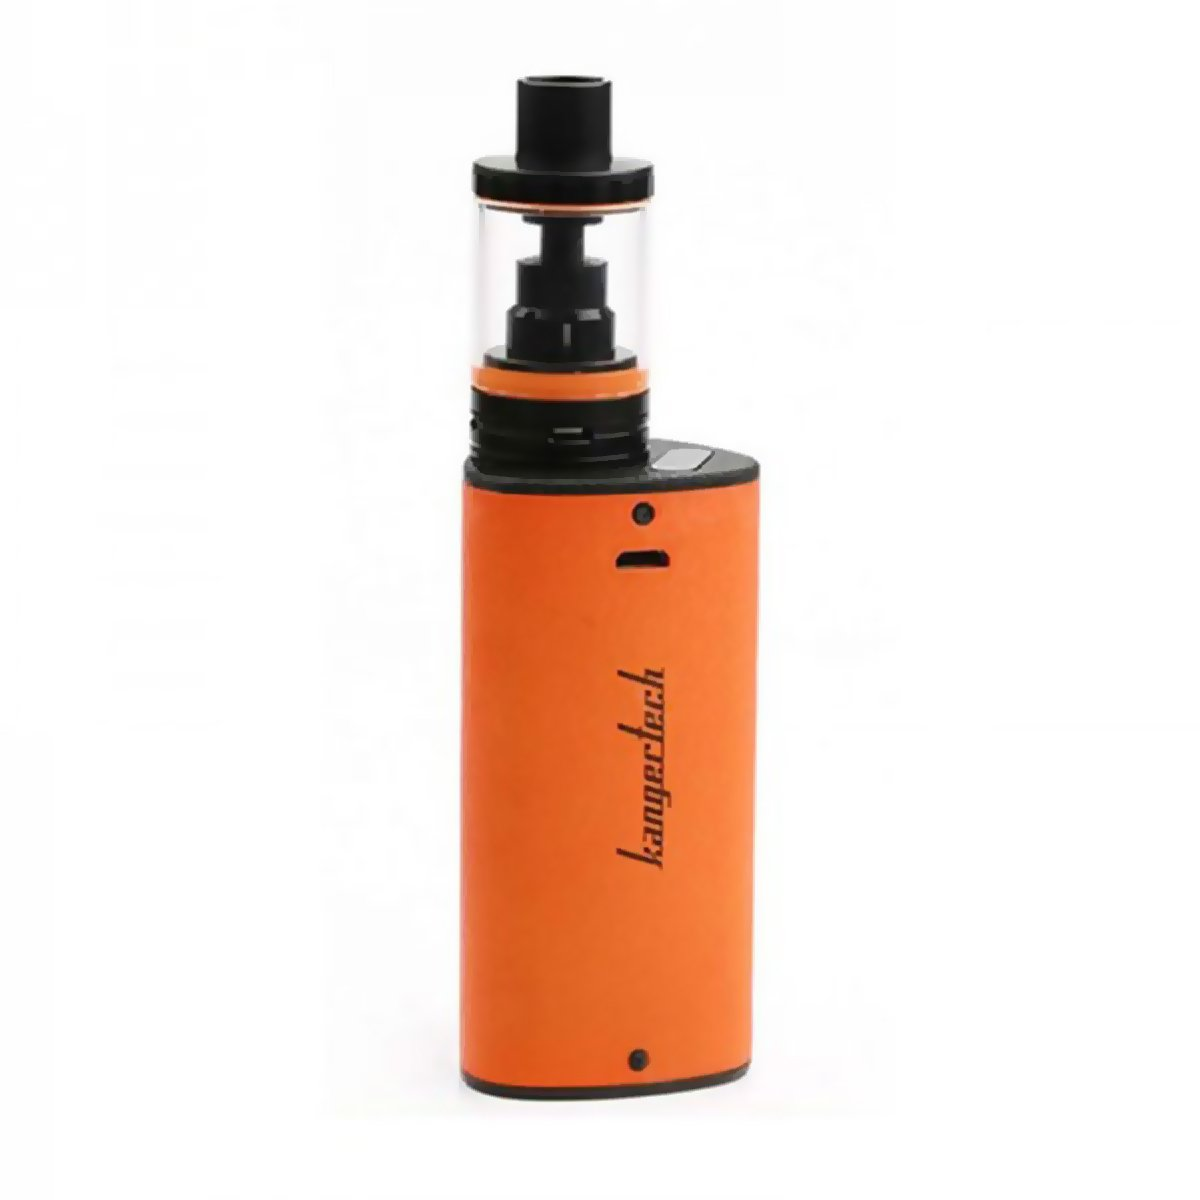 Kangertech K-Kiss Box Mod Kit